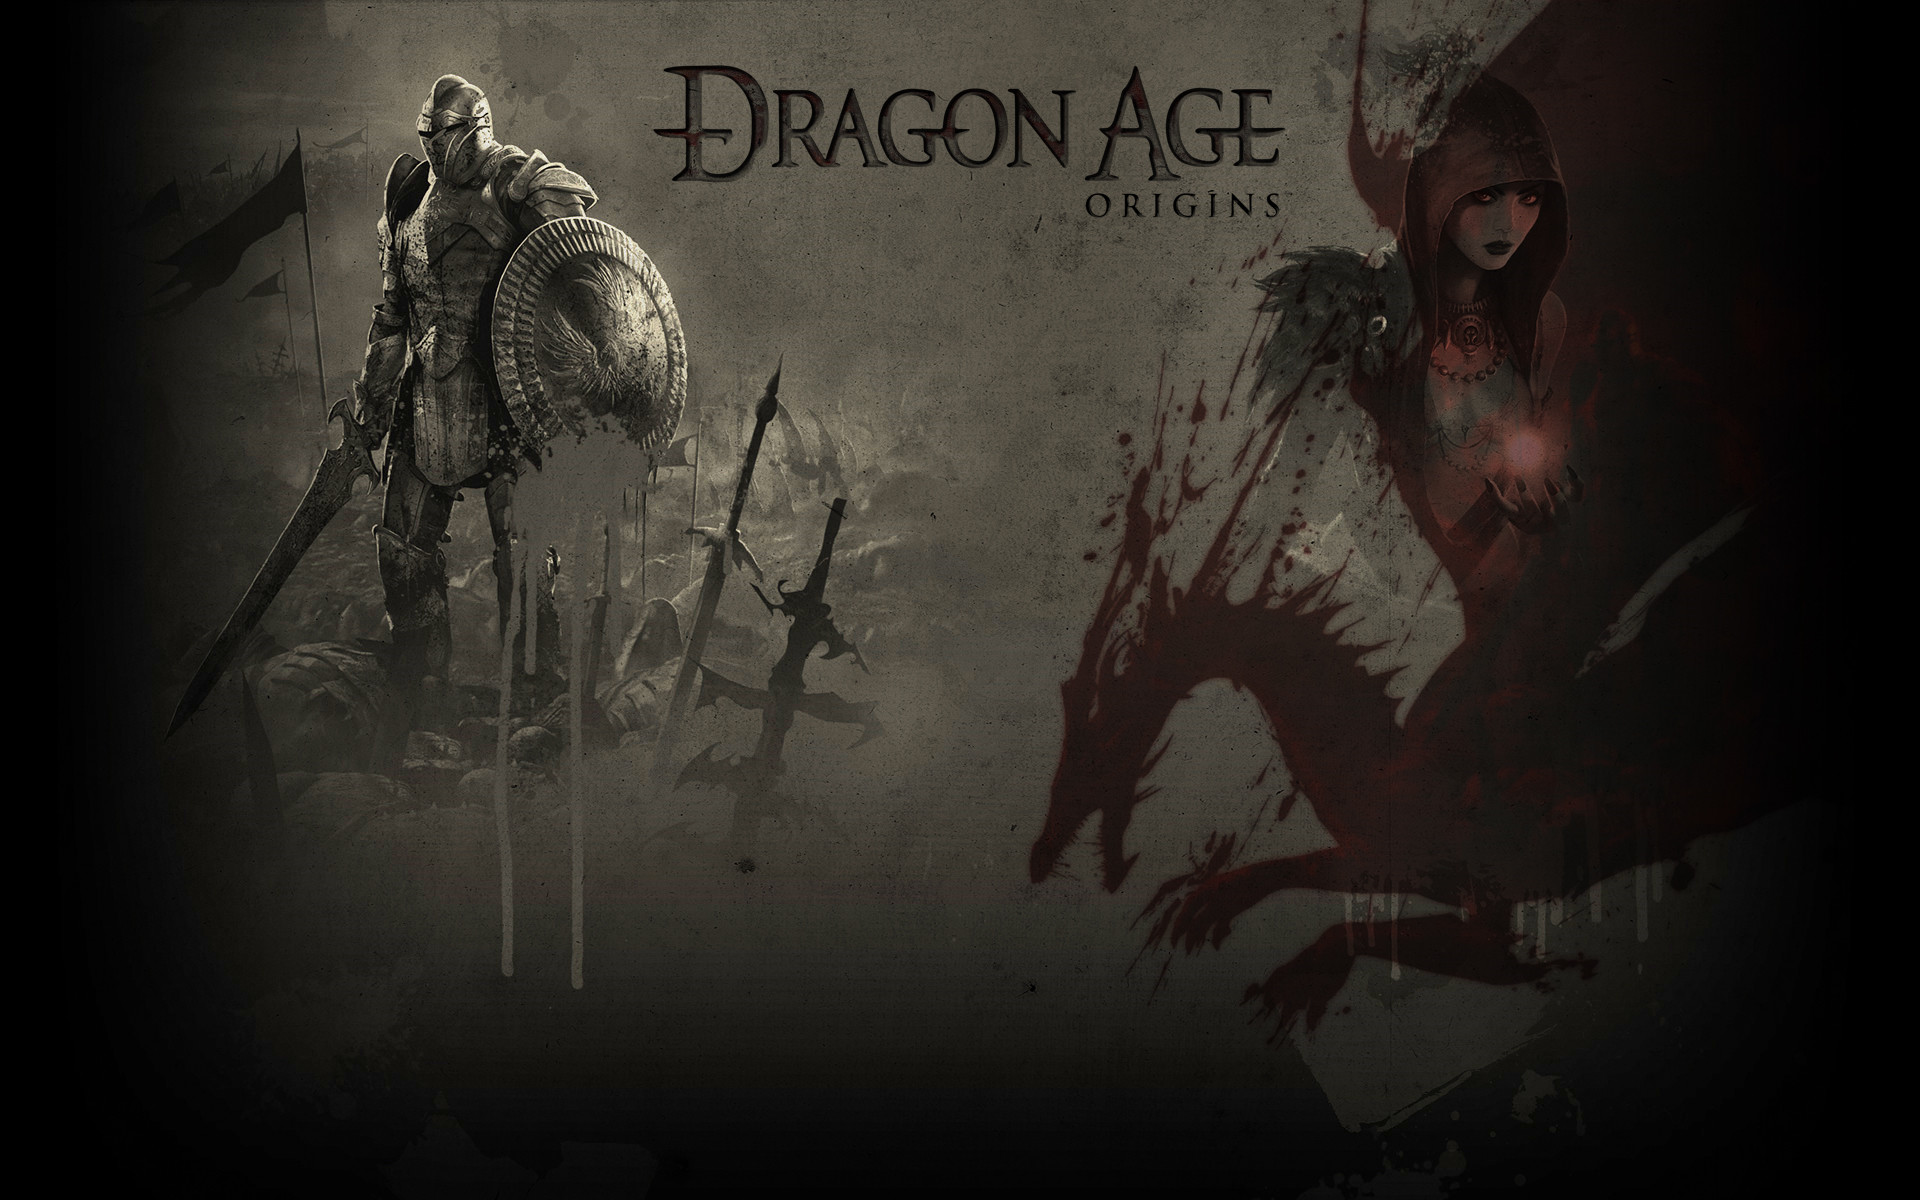 Download Free Dragon Age Origins Wallpaper Hd X PIC MCH03428